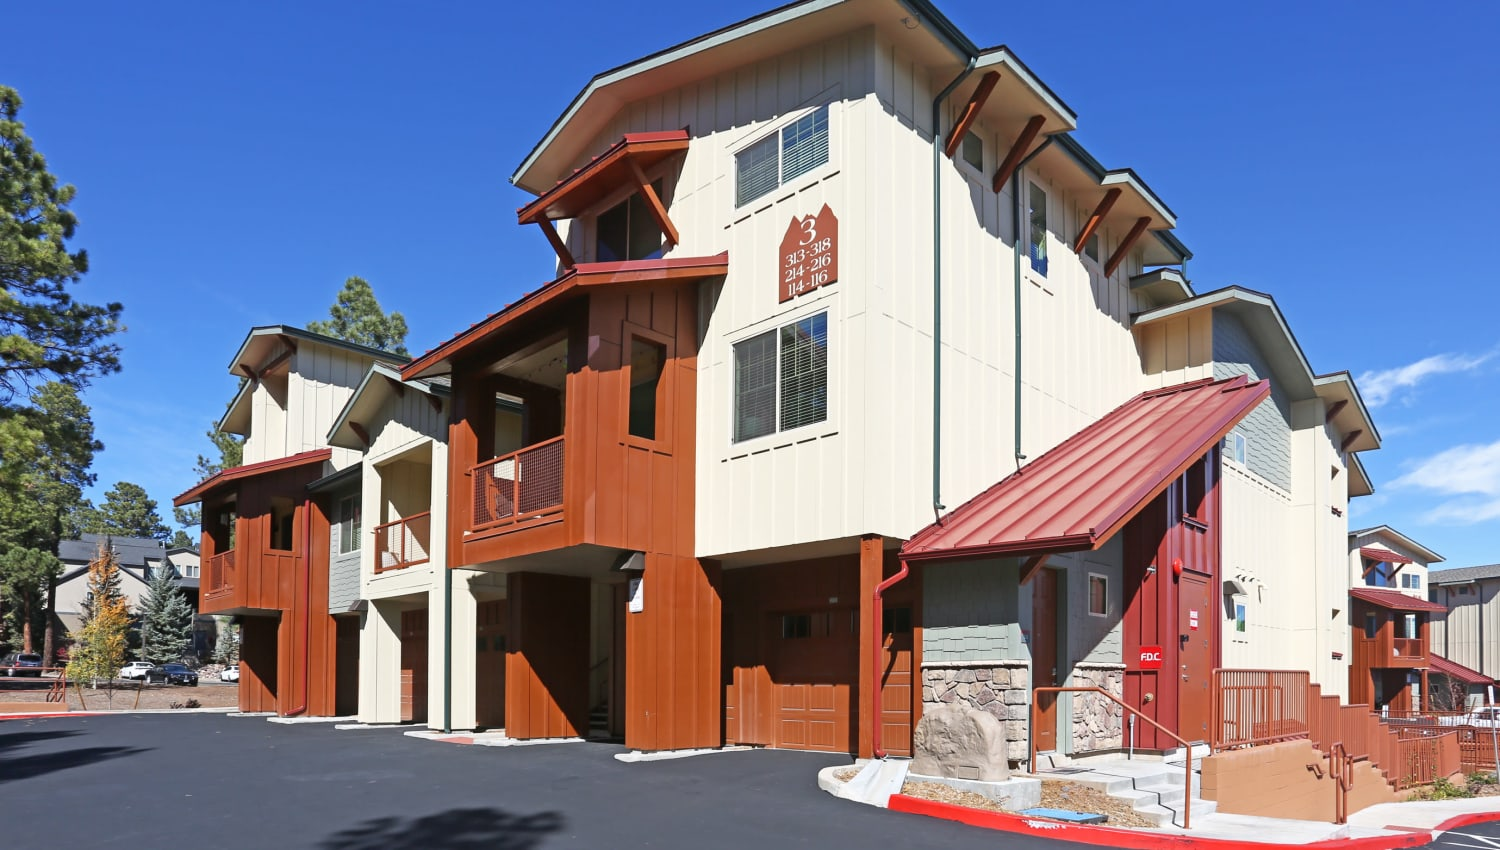 Exterior view of our luxury community at Mountain Trail in Flagstaff, Arizona